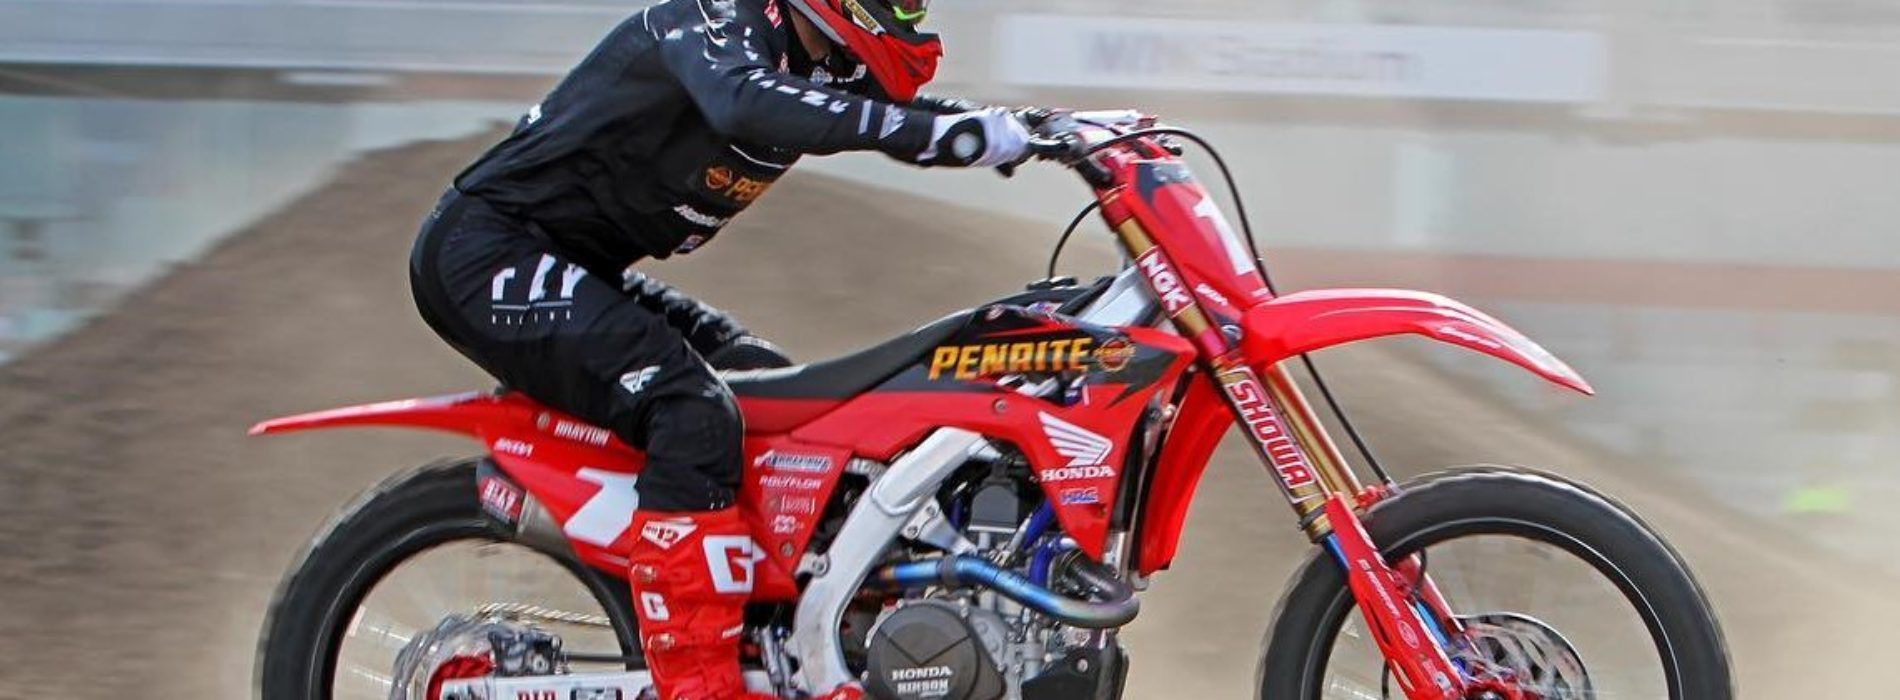 Australian SuperX Championship Round 4 hits Auckland this weekend- all out action, entertainment and fun for all!